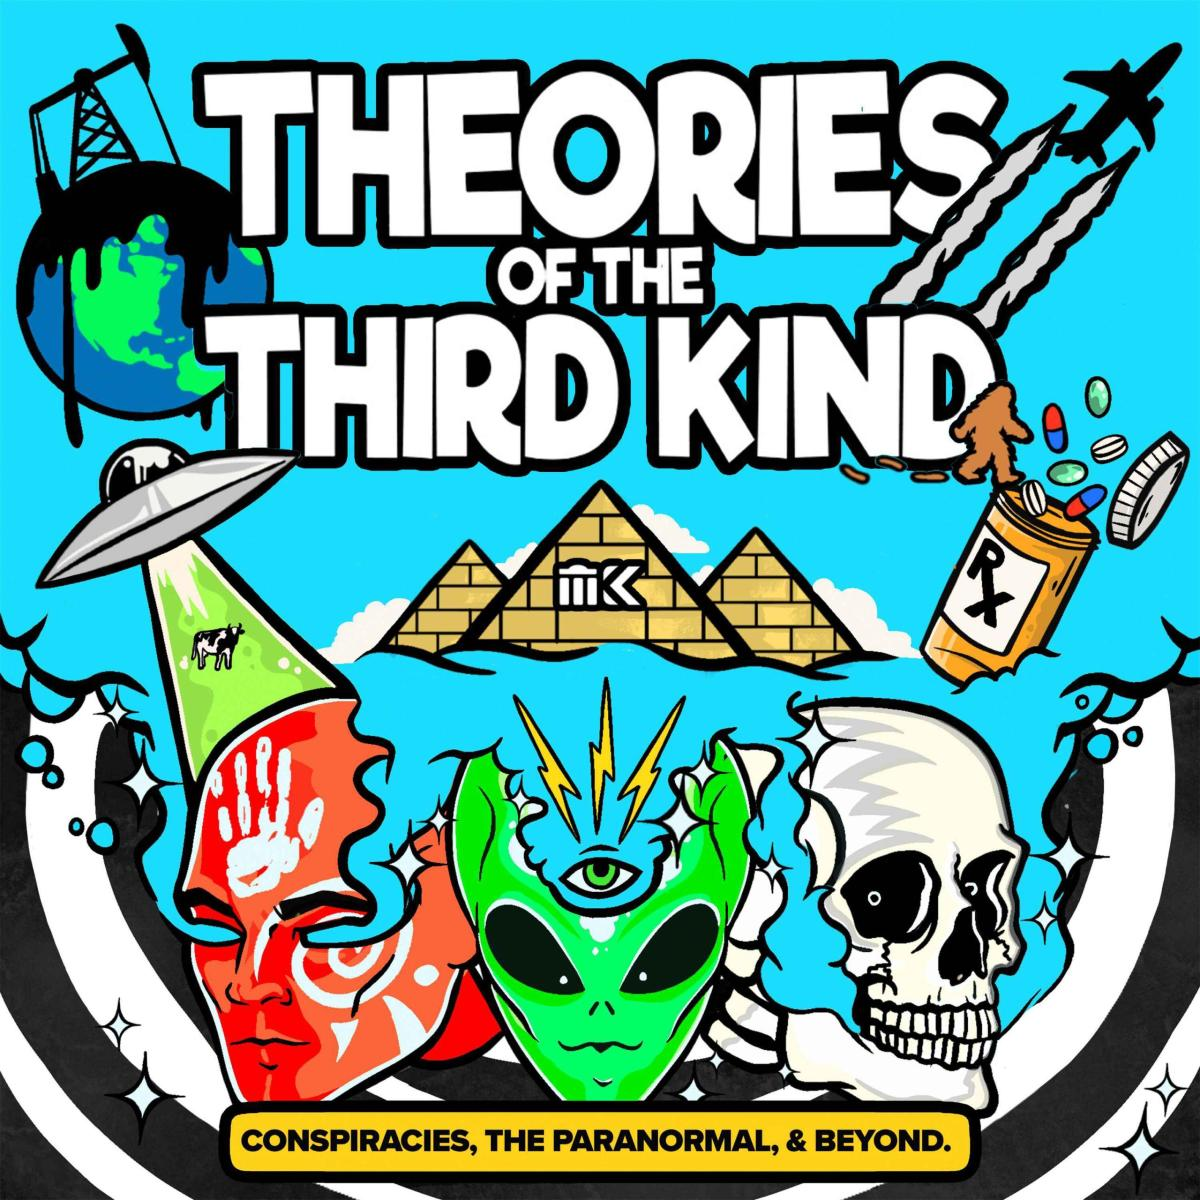 Theories of the Third Kind